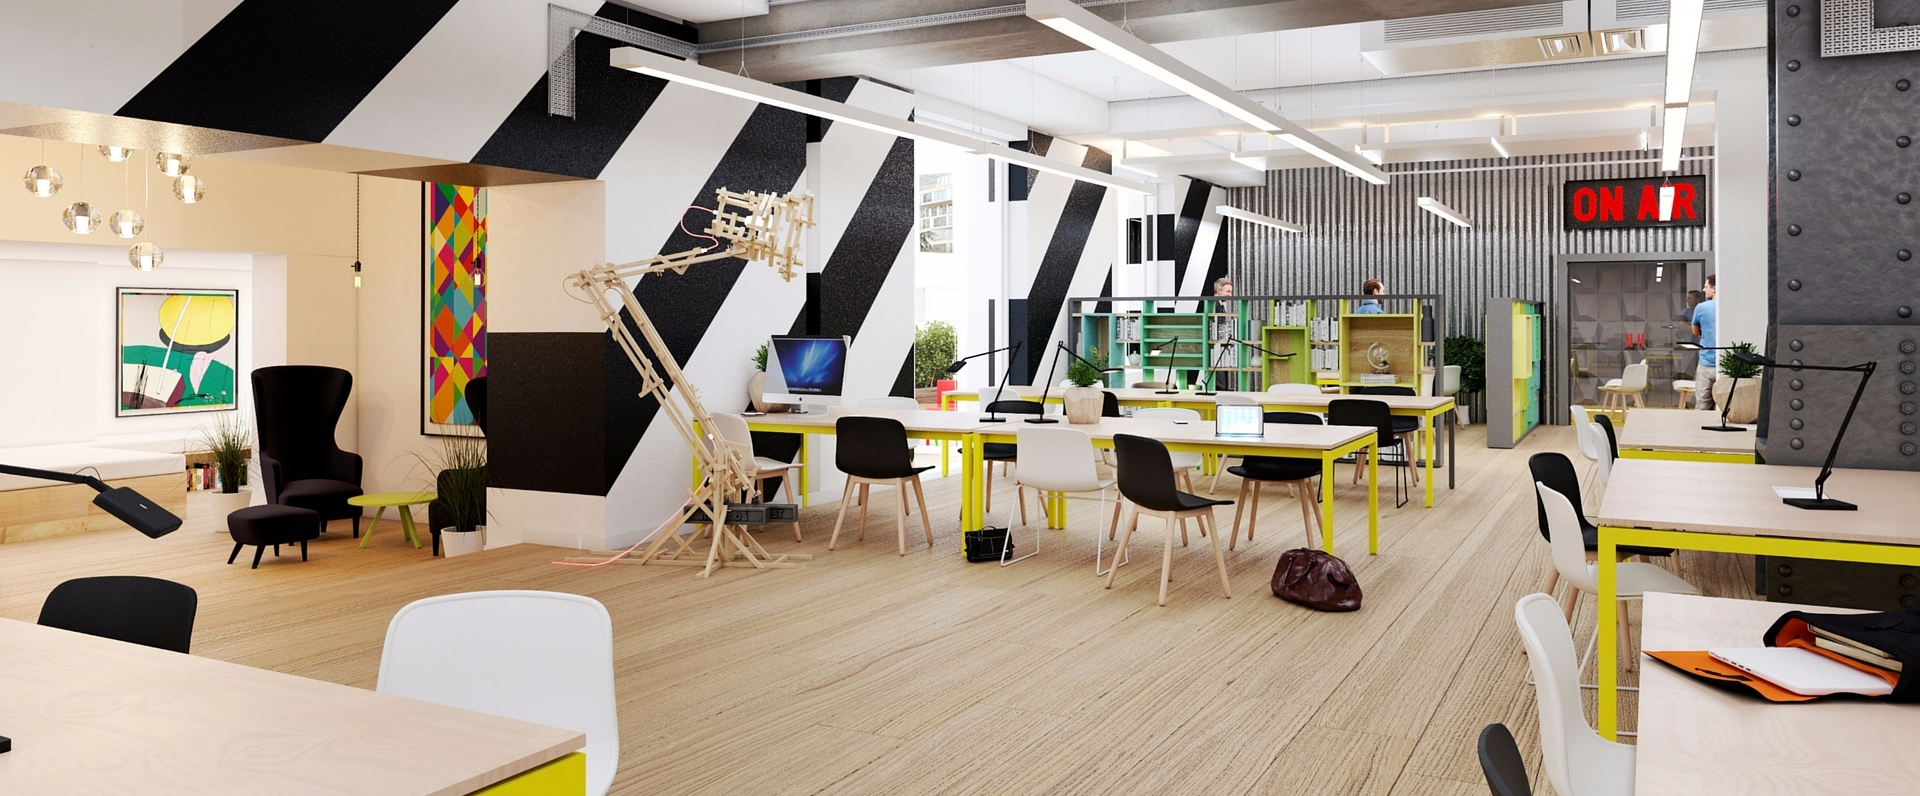 Top 77 London Coworking Spaces For Your Startup